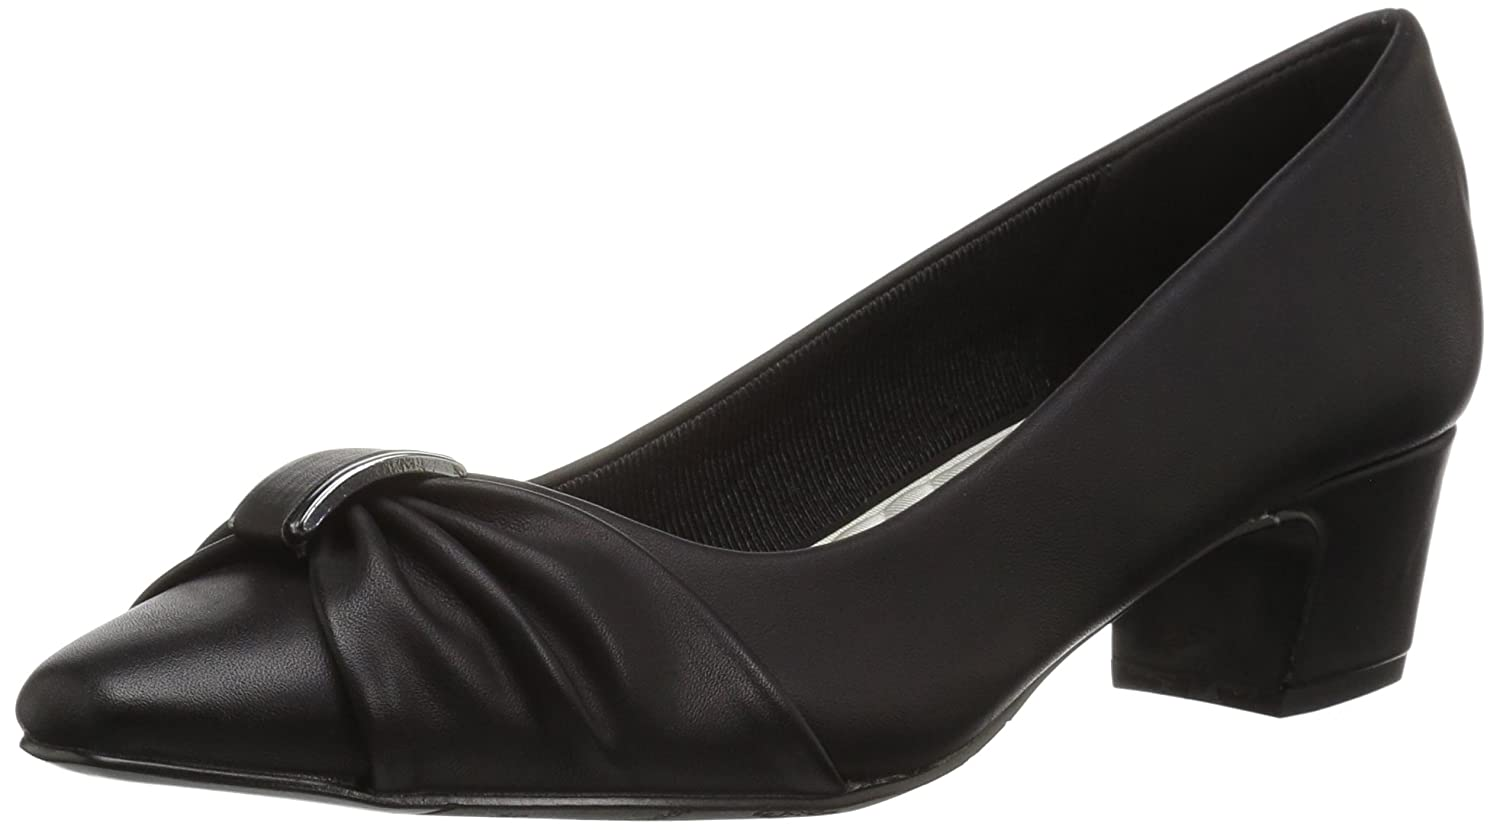 Easy Street Women's Eloise Dress Pump B071FNQFF2 10 W US|Black